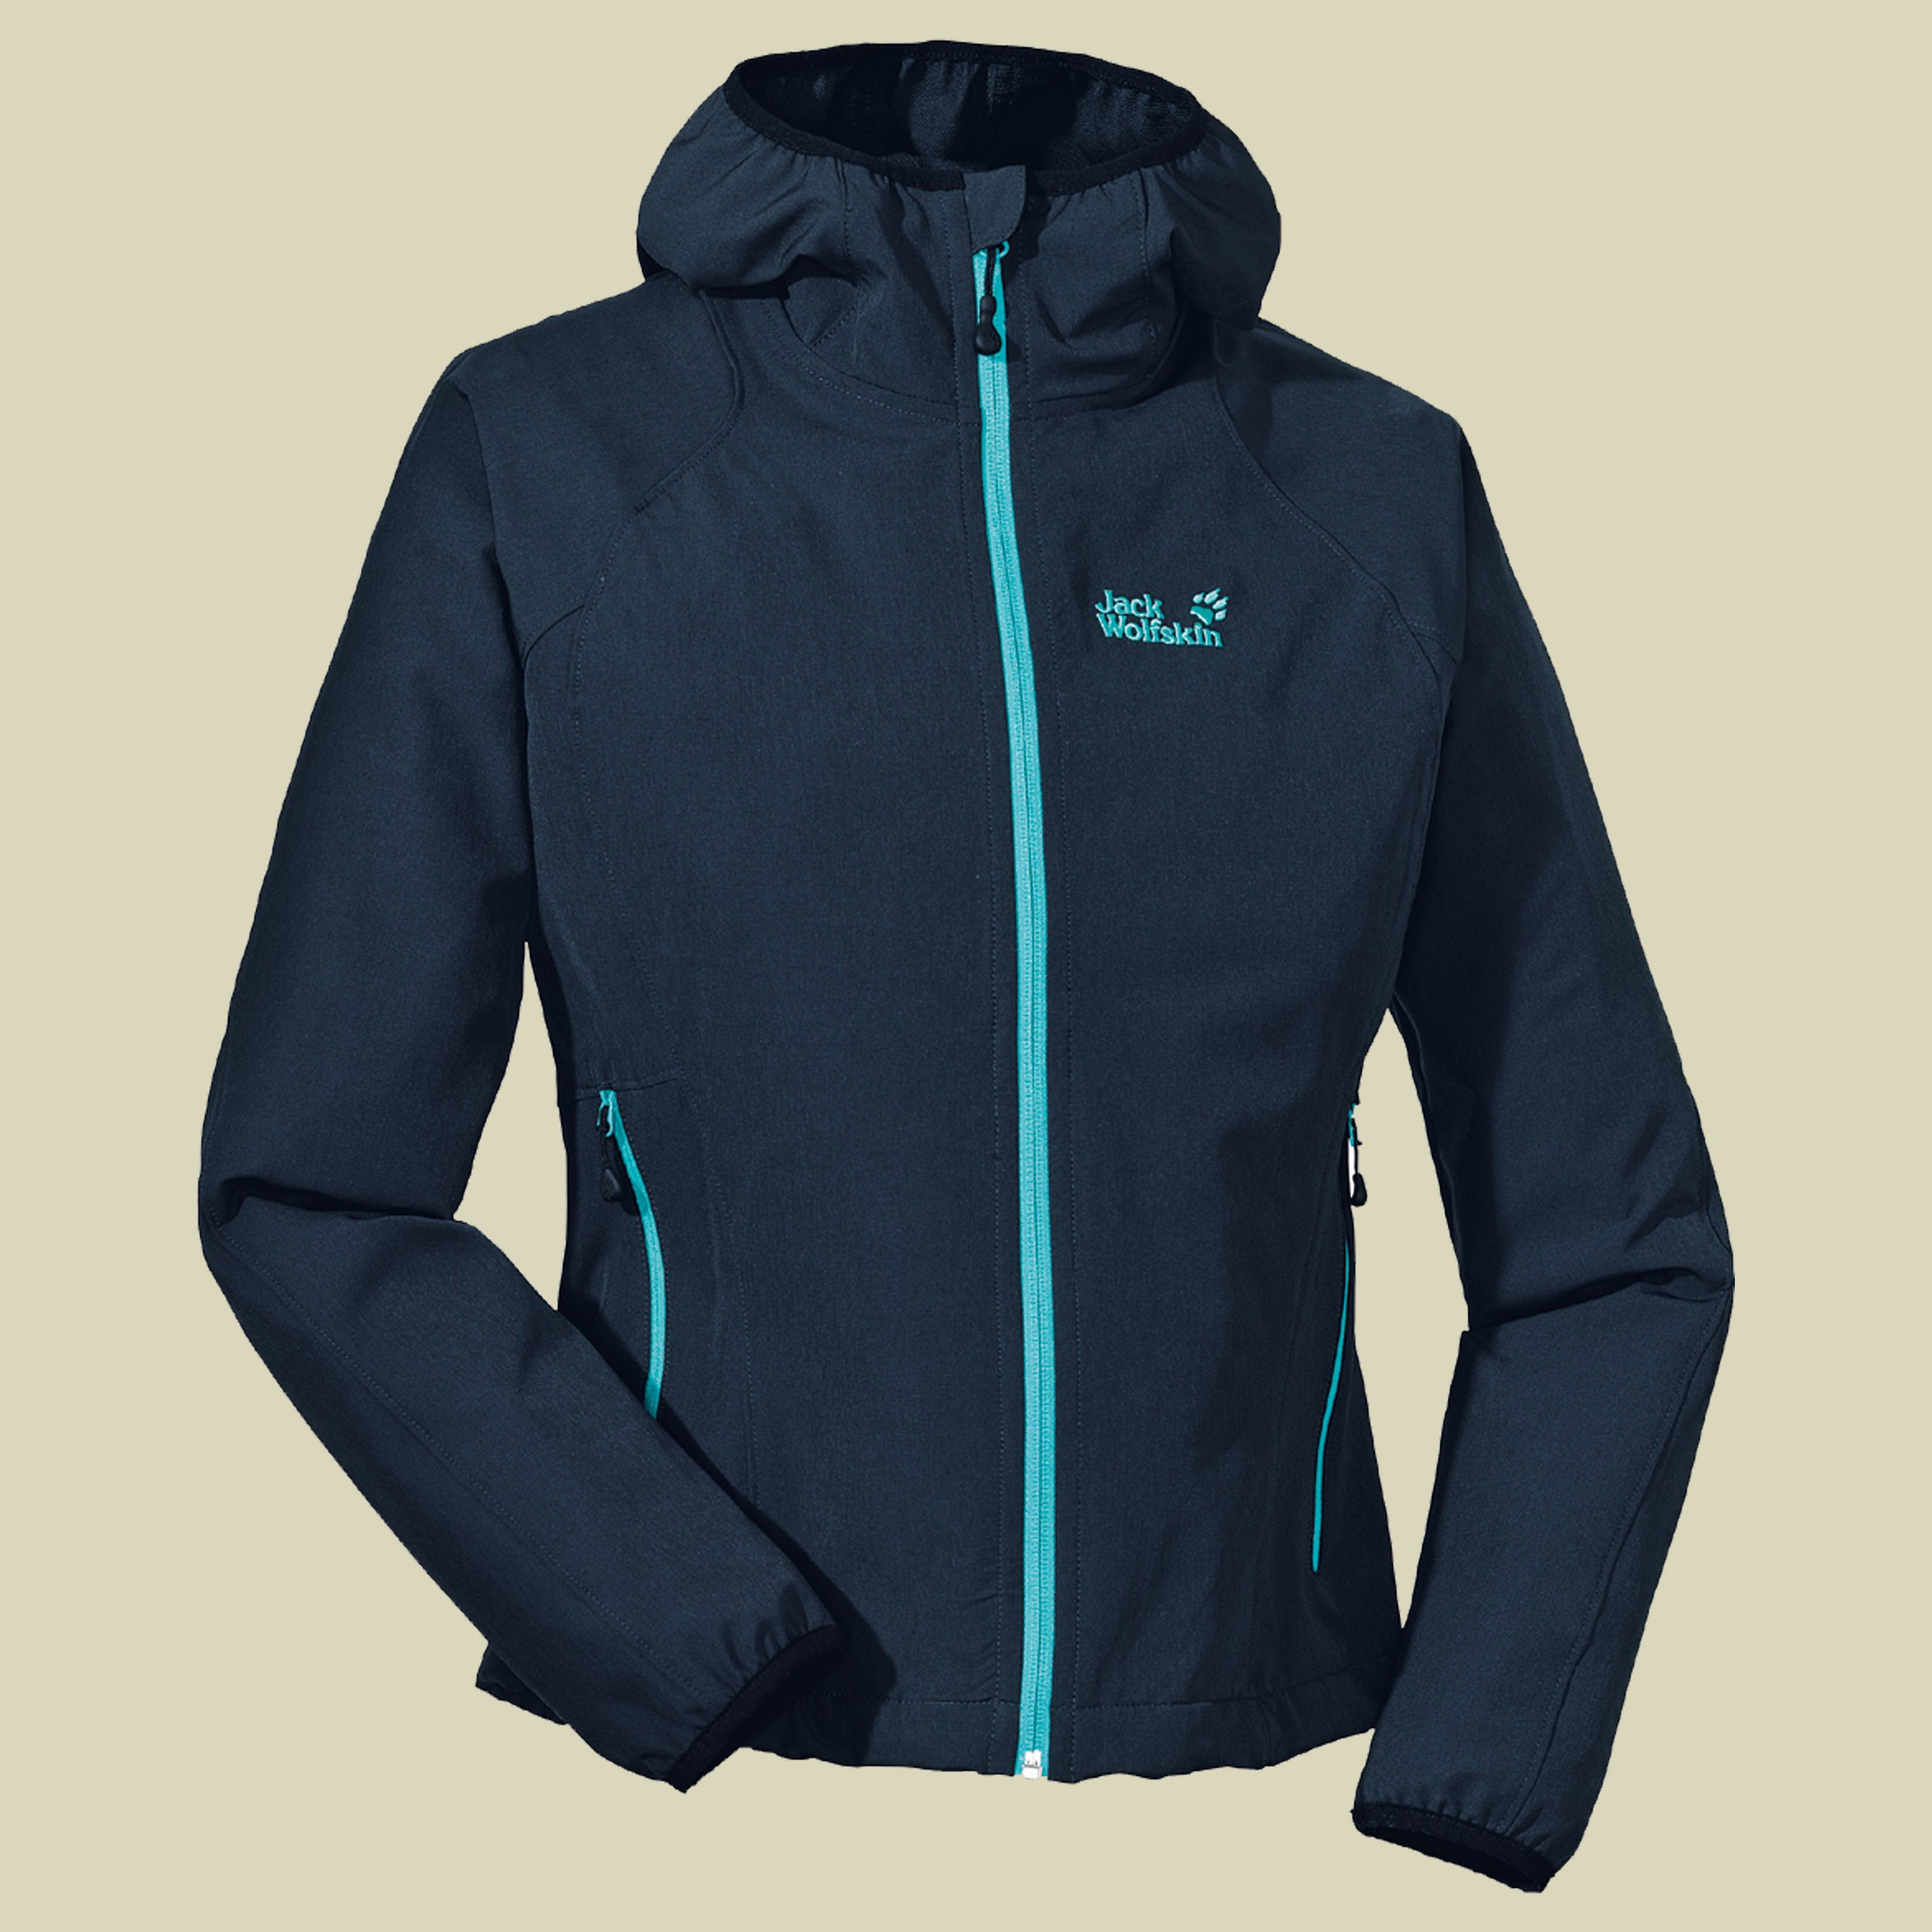 Turbulence Jacket Women